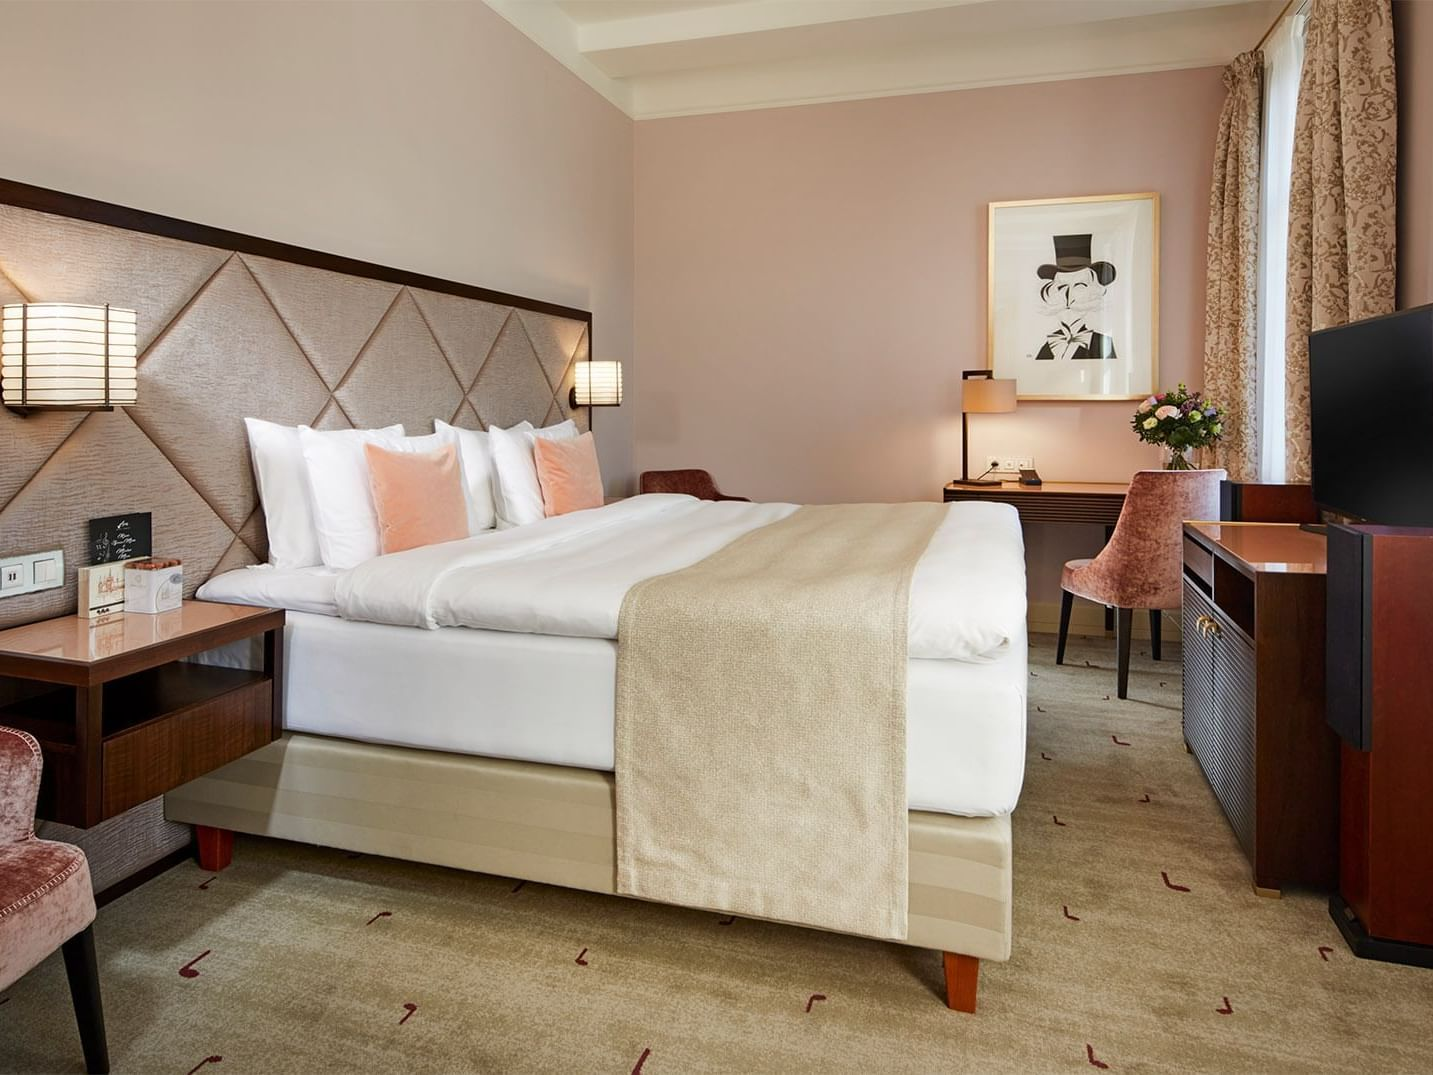 Deluxe Room at Aria Hotel in Prague